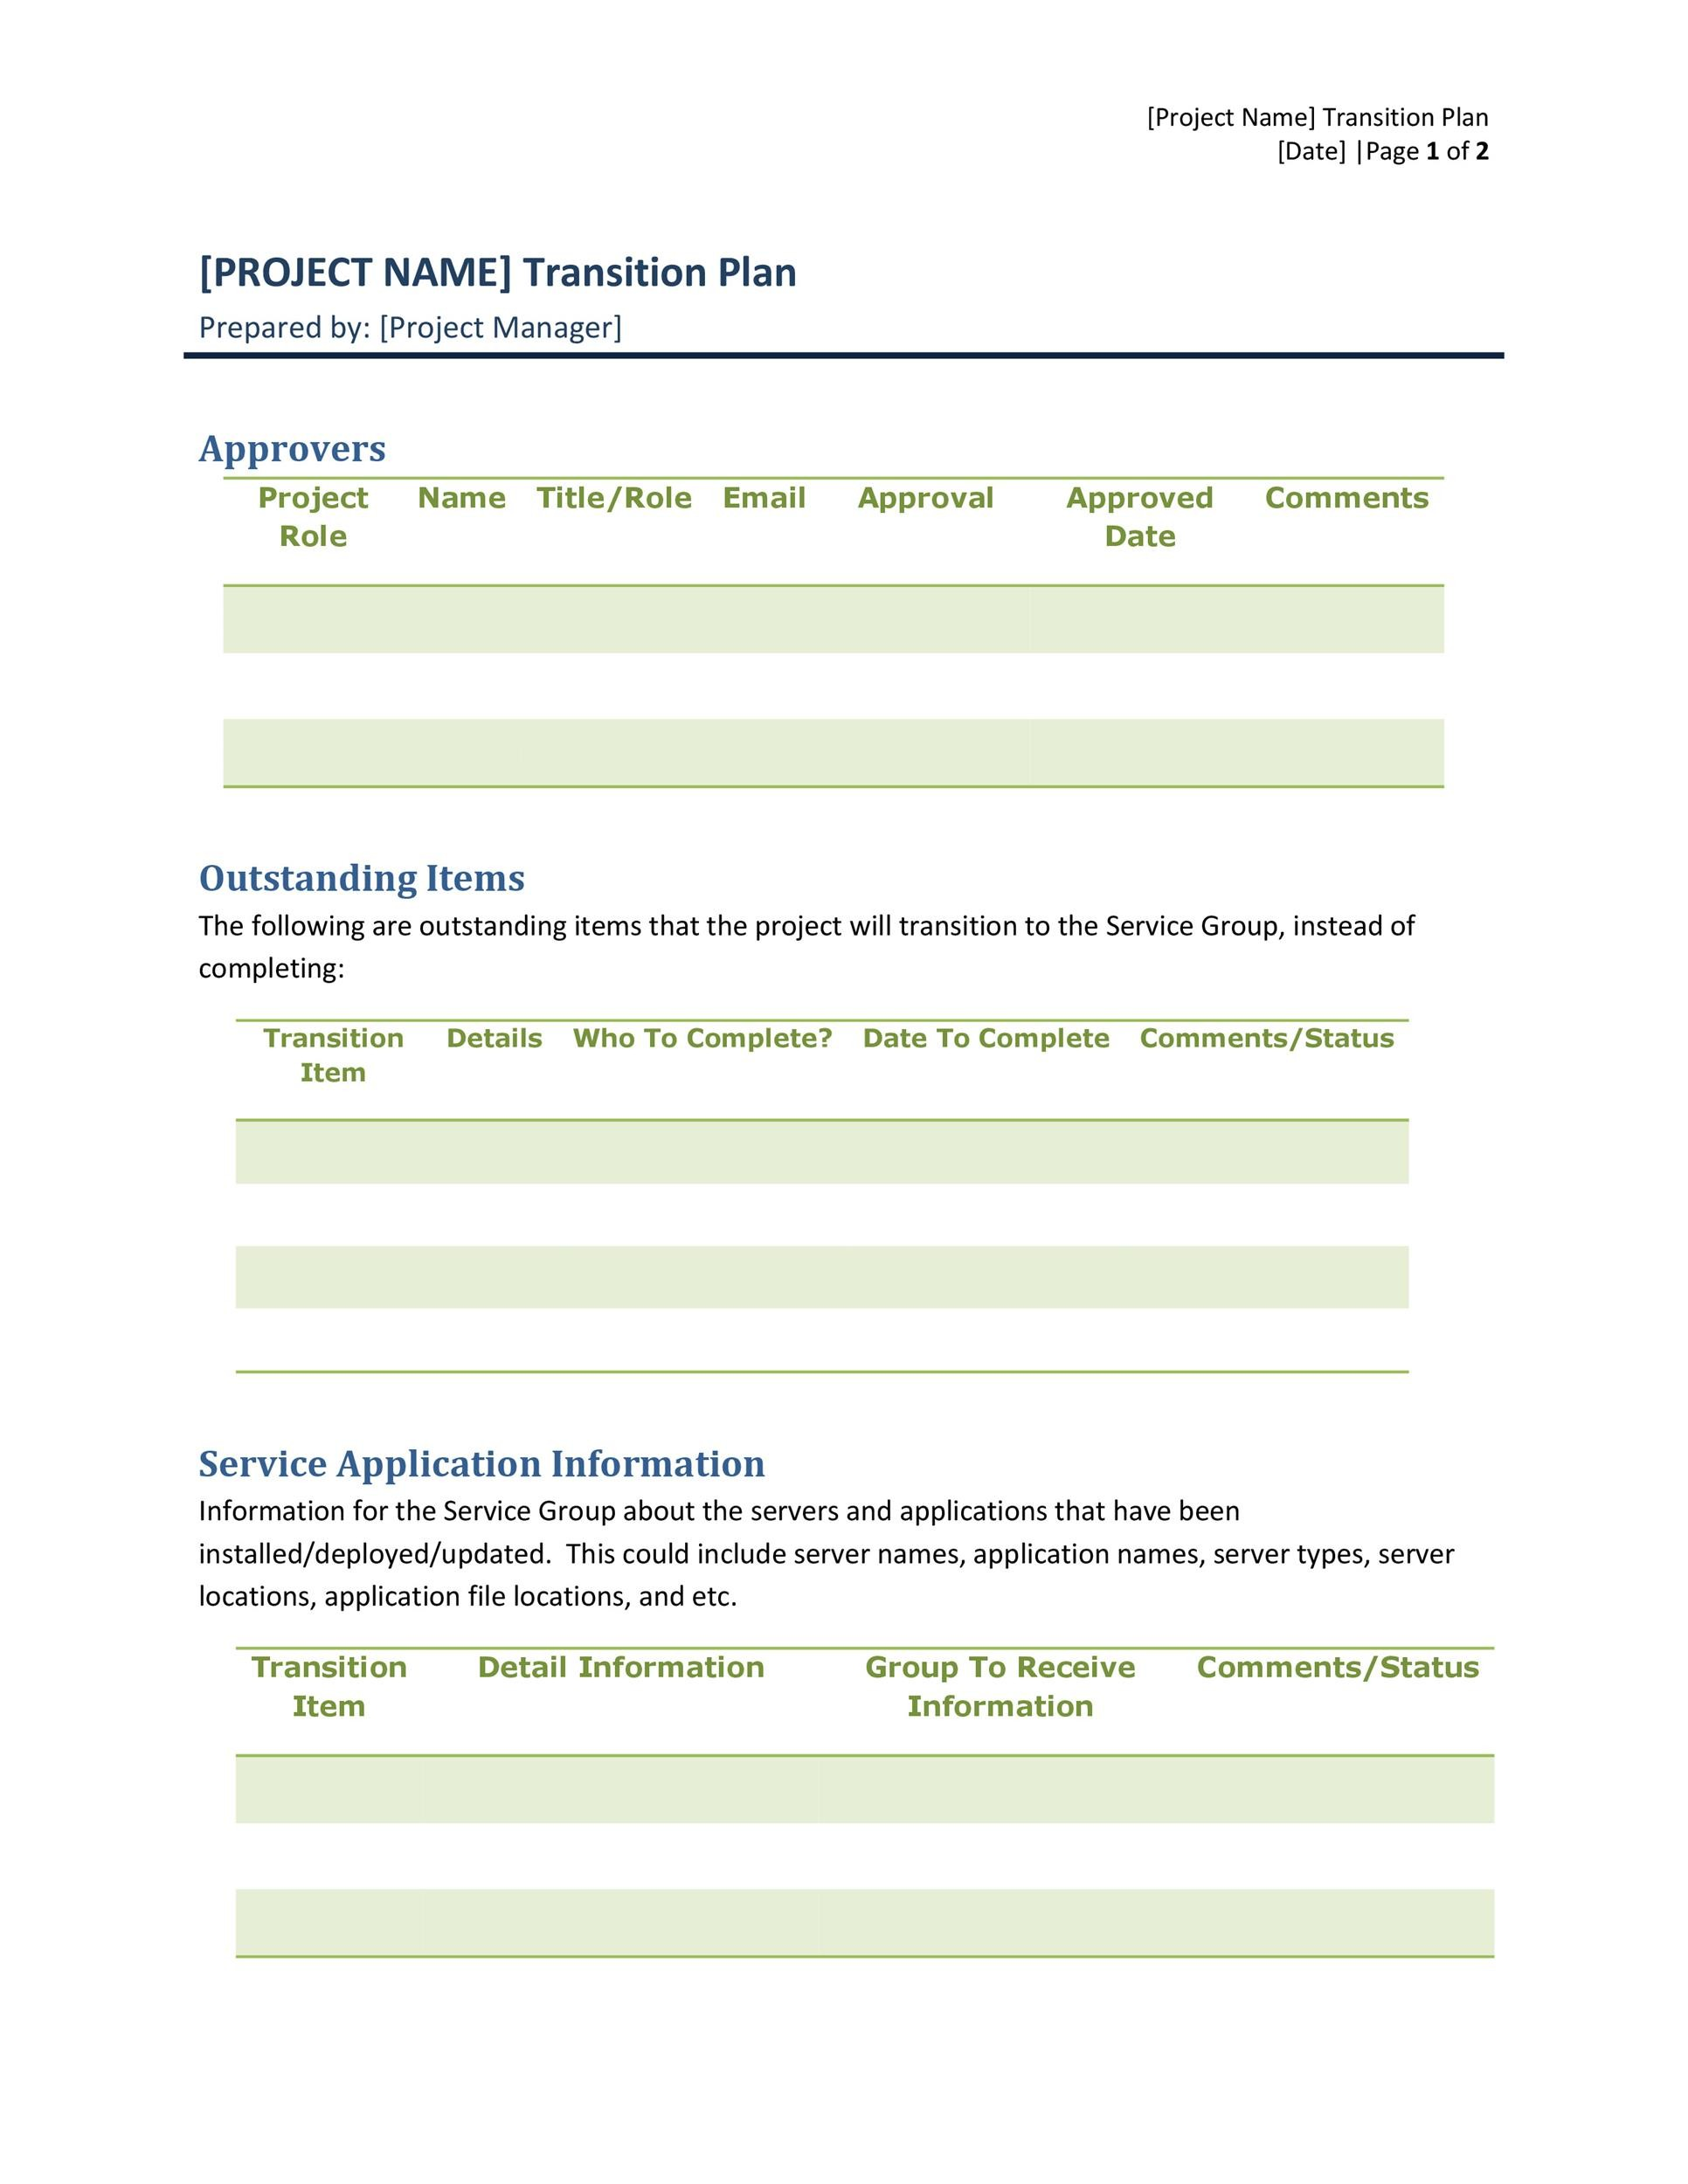 ceo transition plan template - 40 transition plan templates career individual